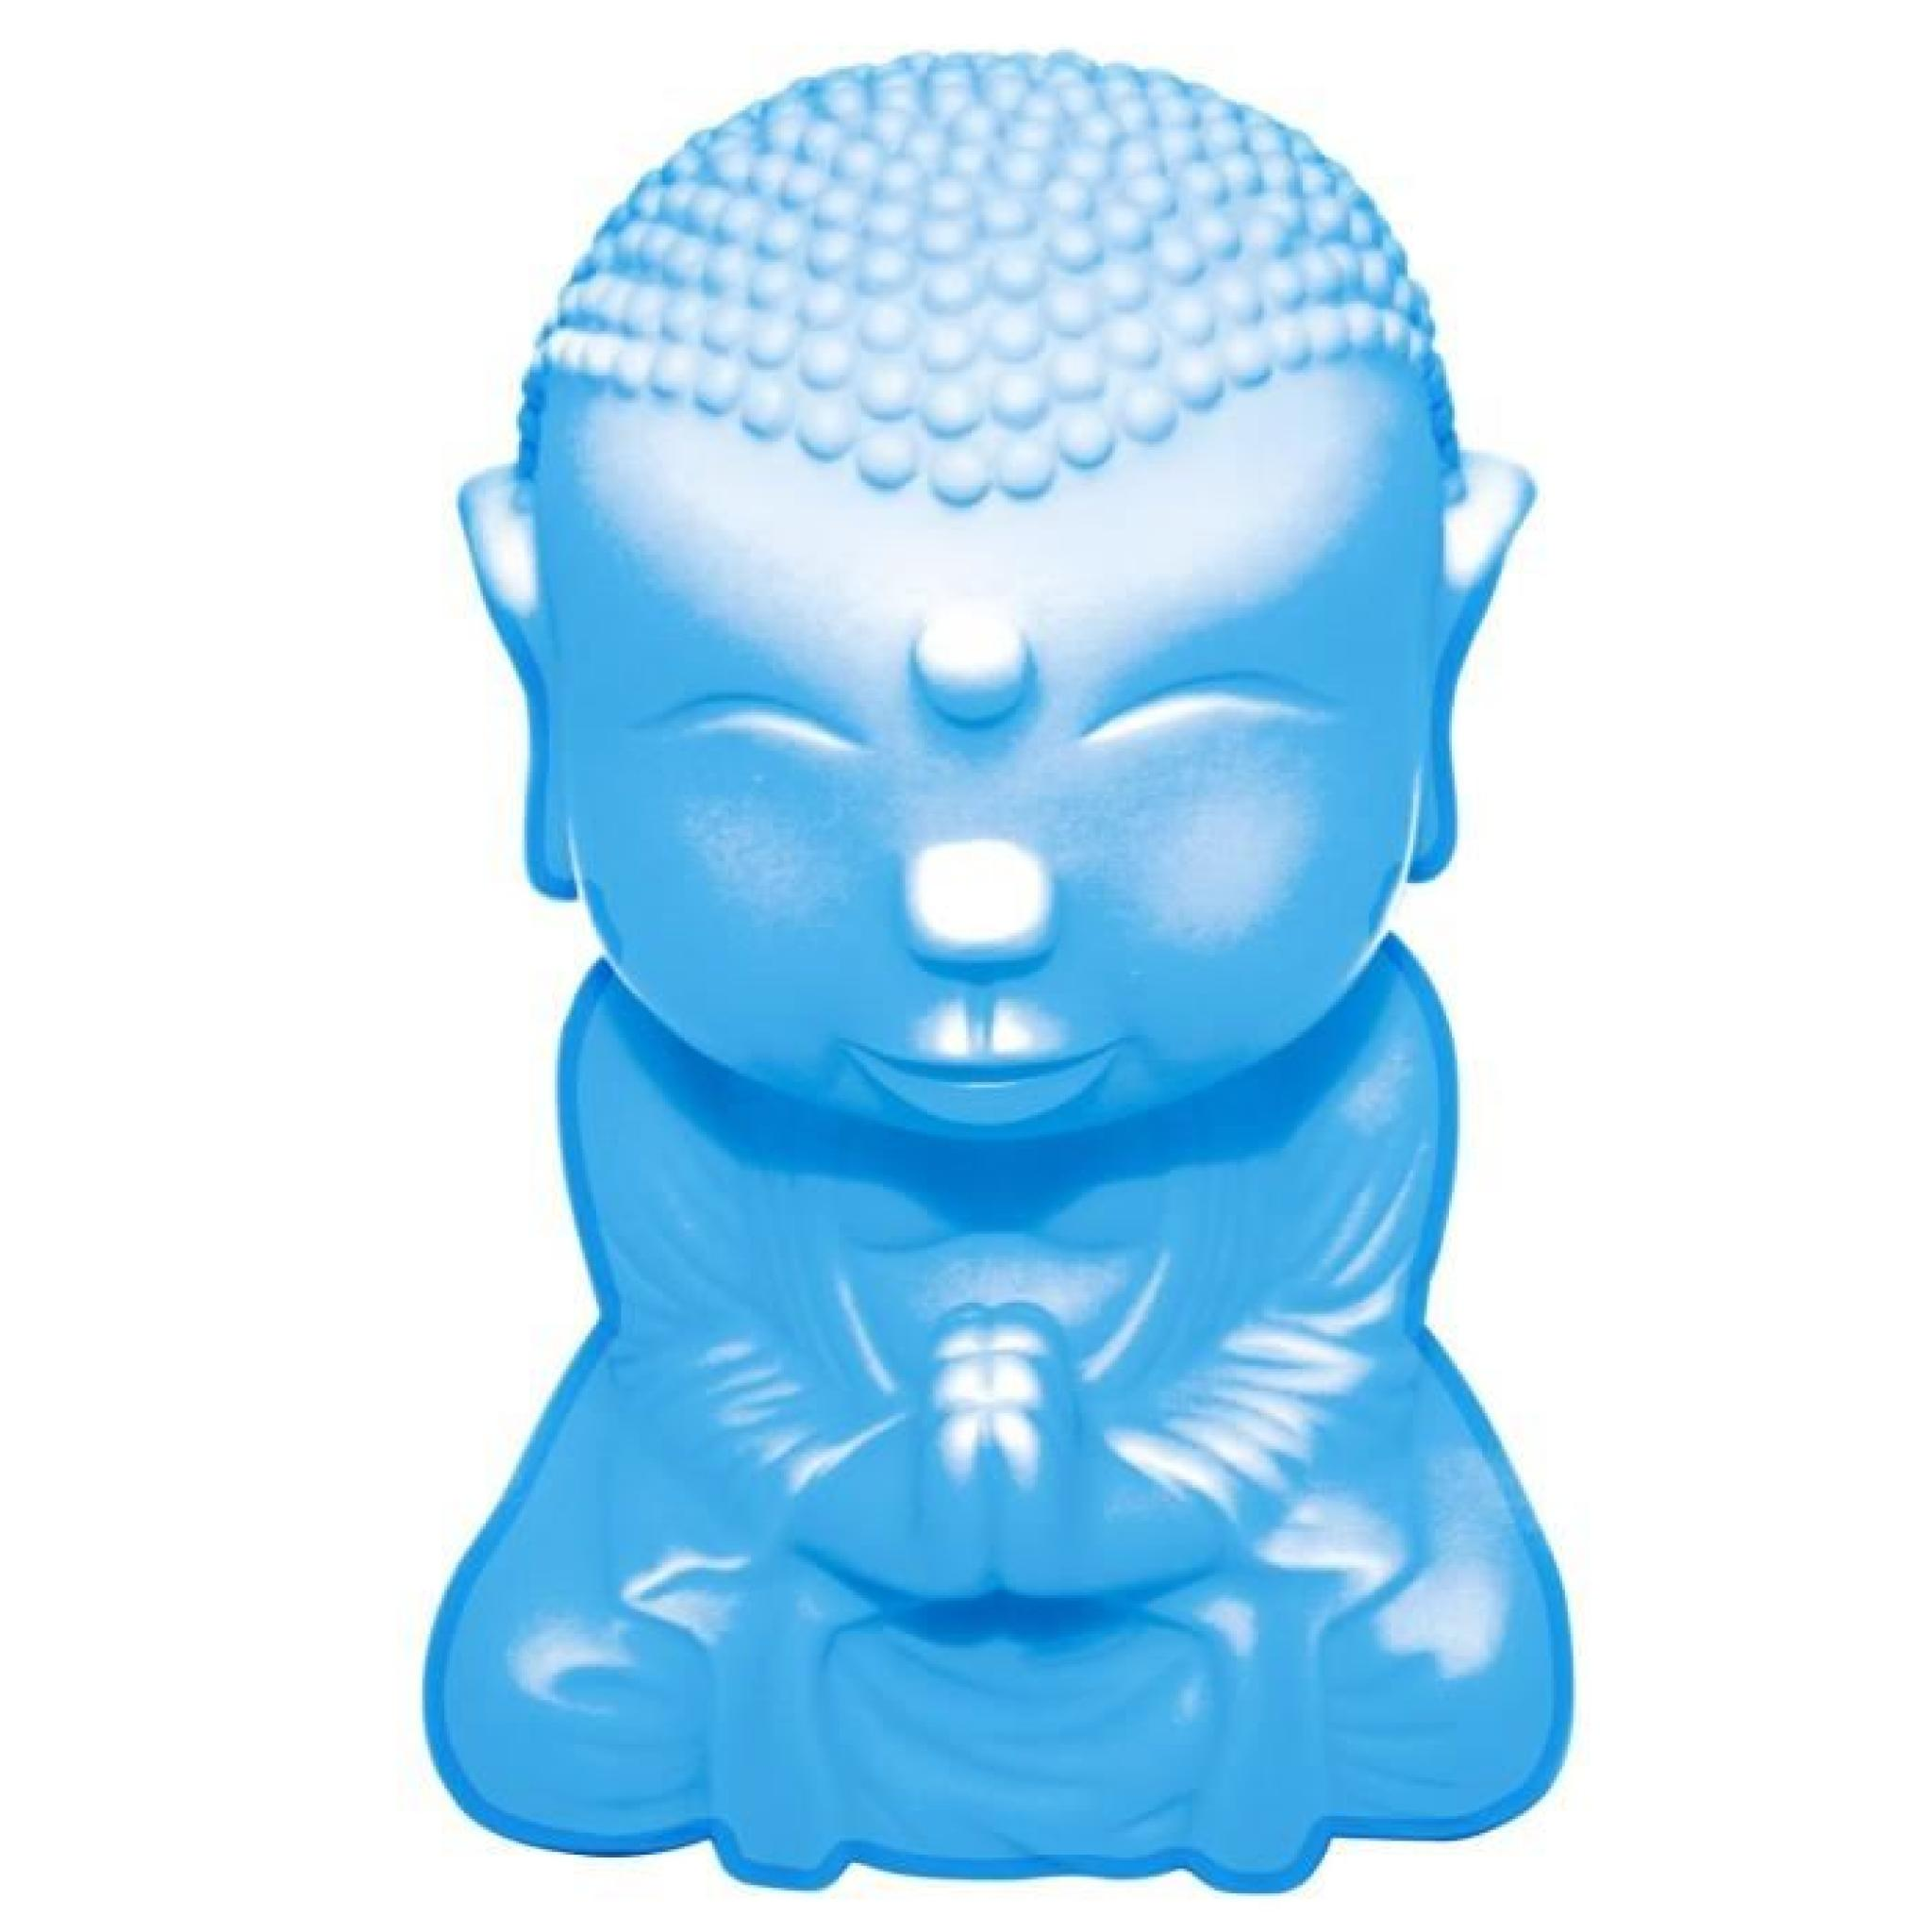 mini lampe bouddha bleu luminaire d 39 ambiance zen cadeau bouddha achat vente lampe a poser. Black Bedroom Furniture Sets. Home Design Ideas